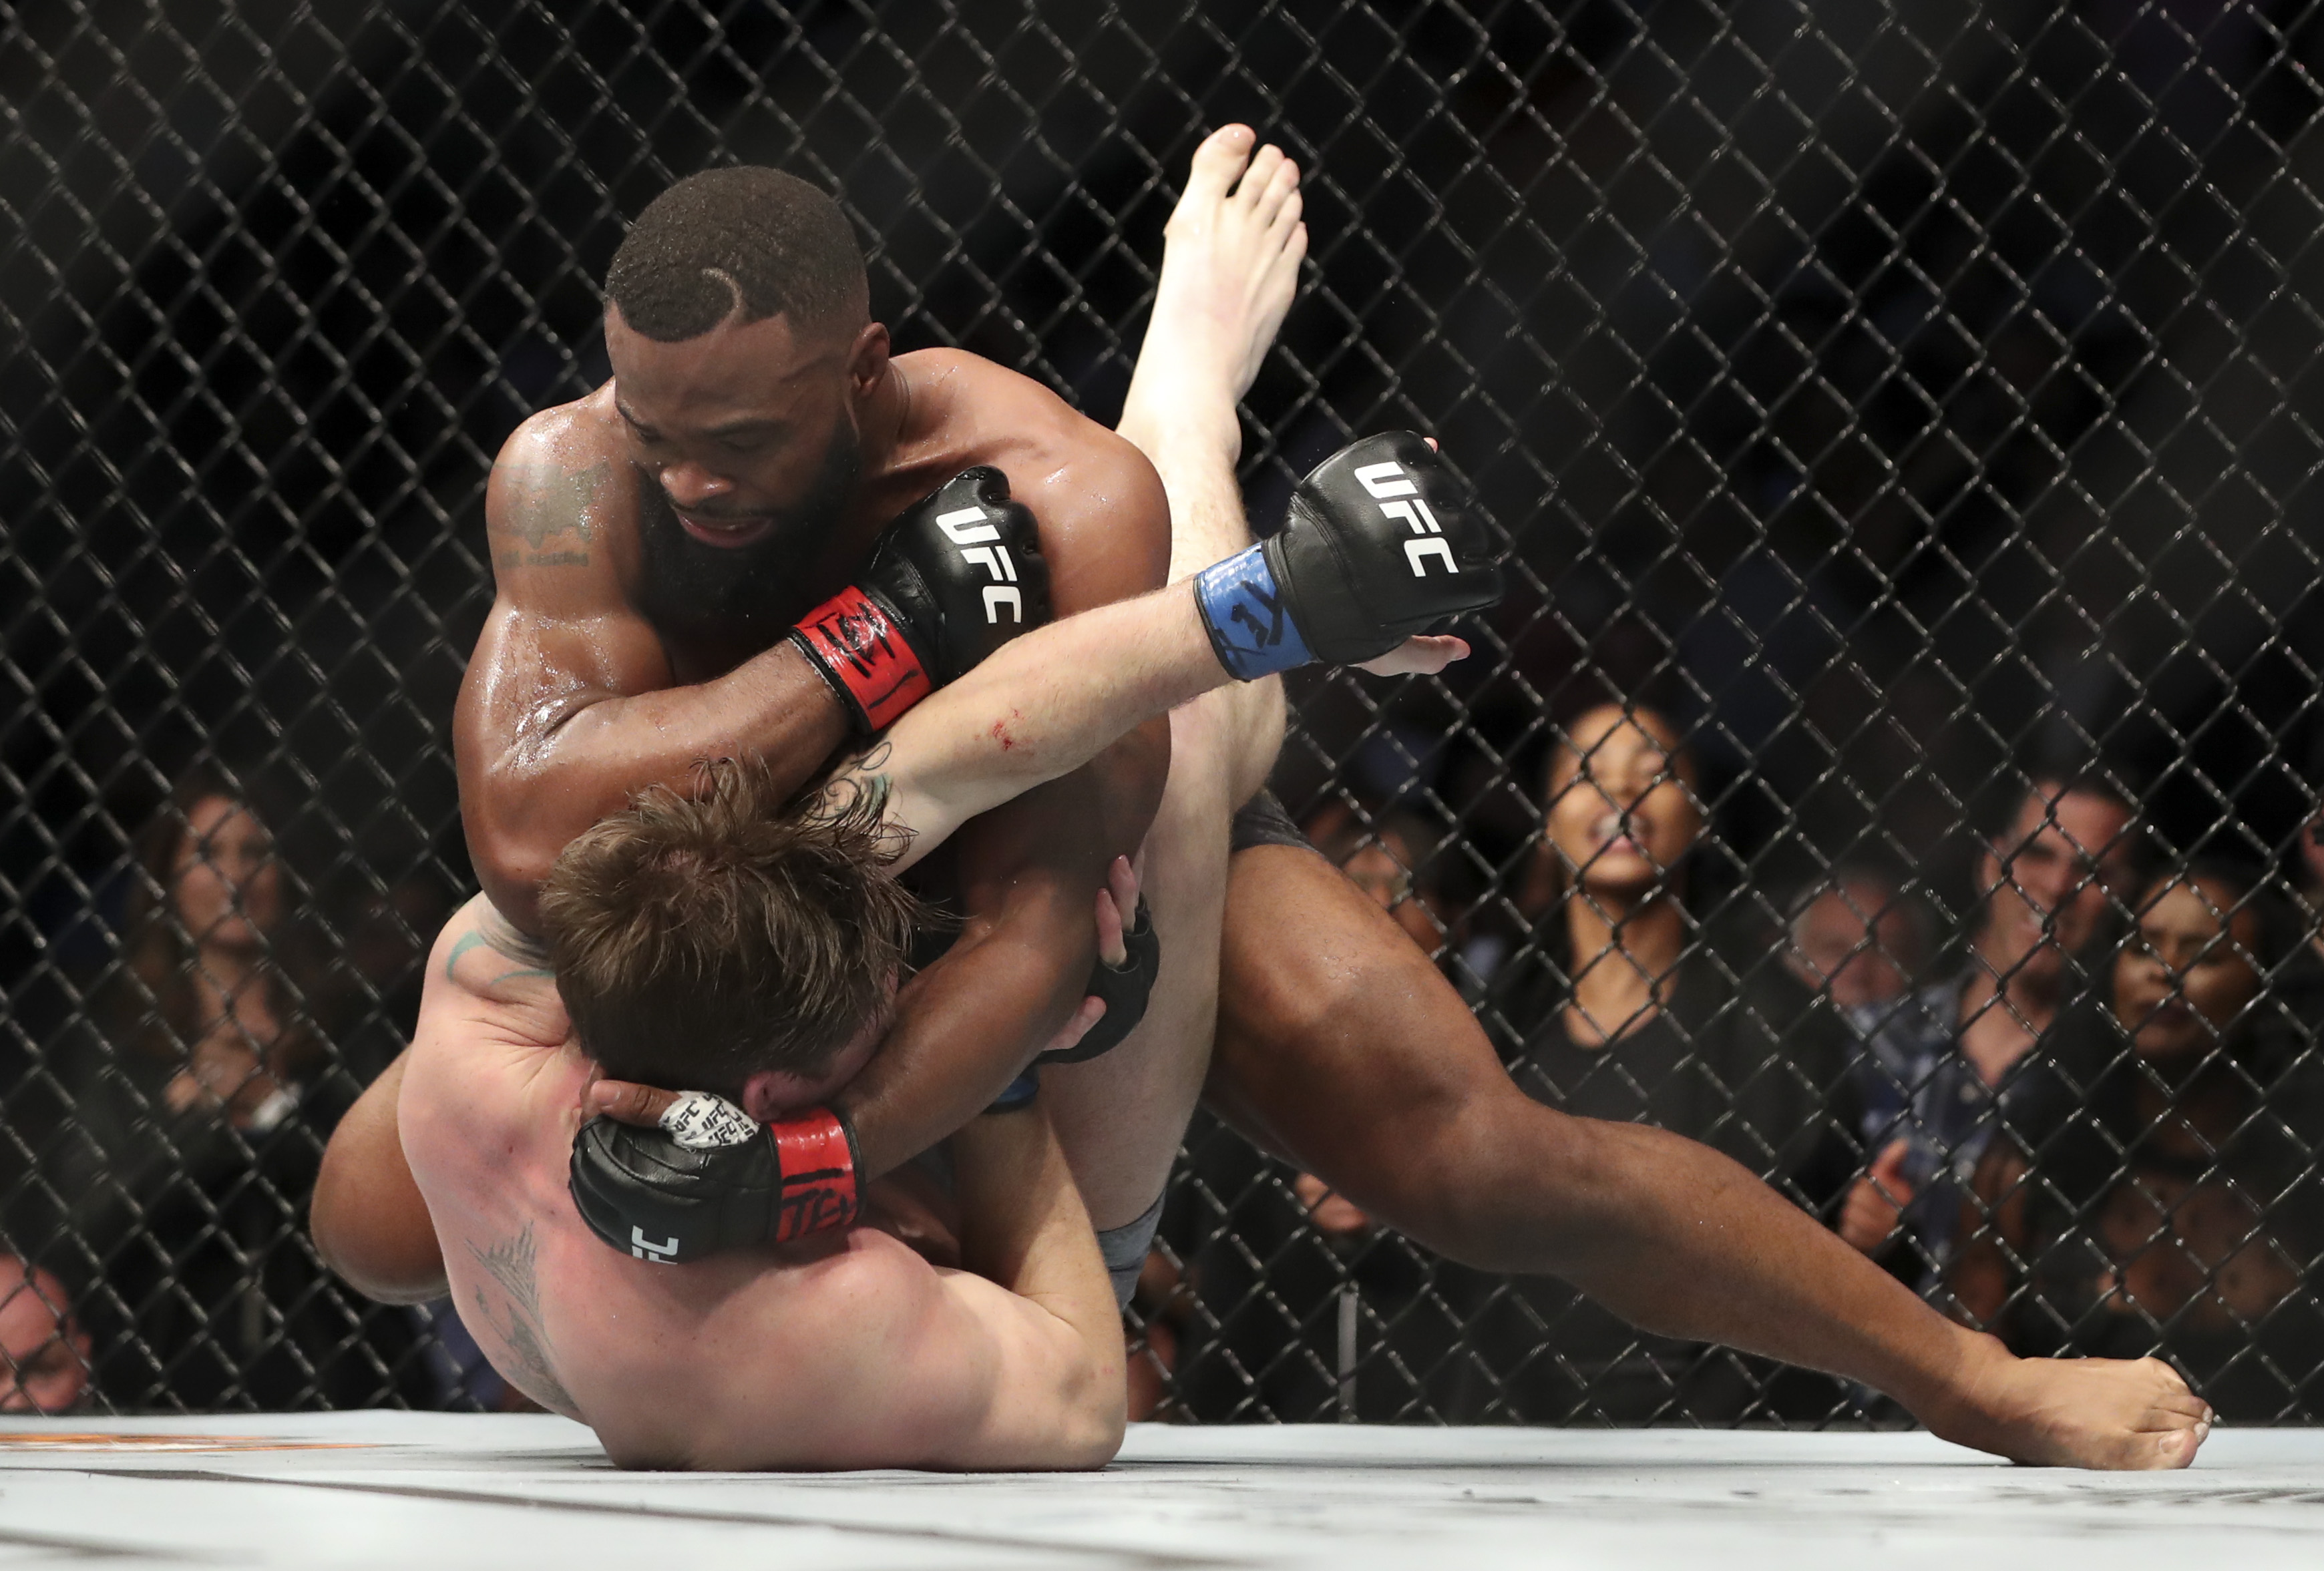 Sep 8, 2018; Dallas, TX, USA; Tyron Woodley (red gloves) fights Darren Till (blue gloves) during UFC 228 at American Airlines Center. Mandatory Credit: Kevin Jairaj-USA TODAY Sports